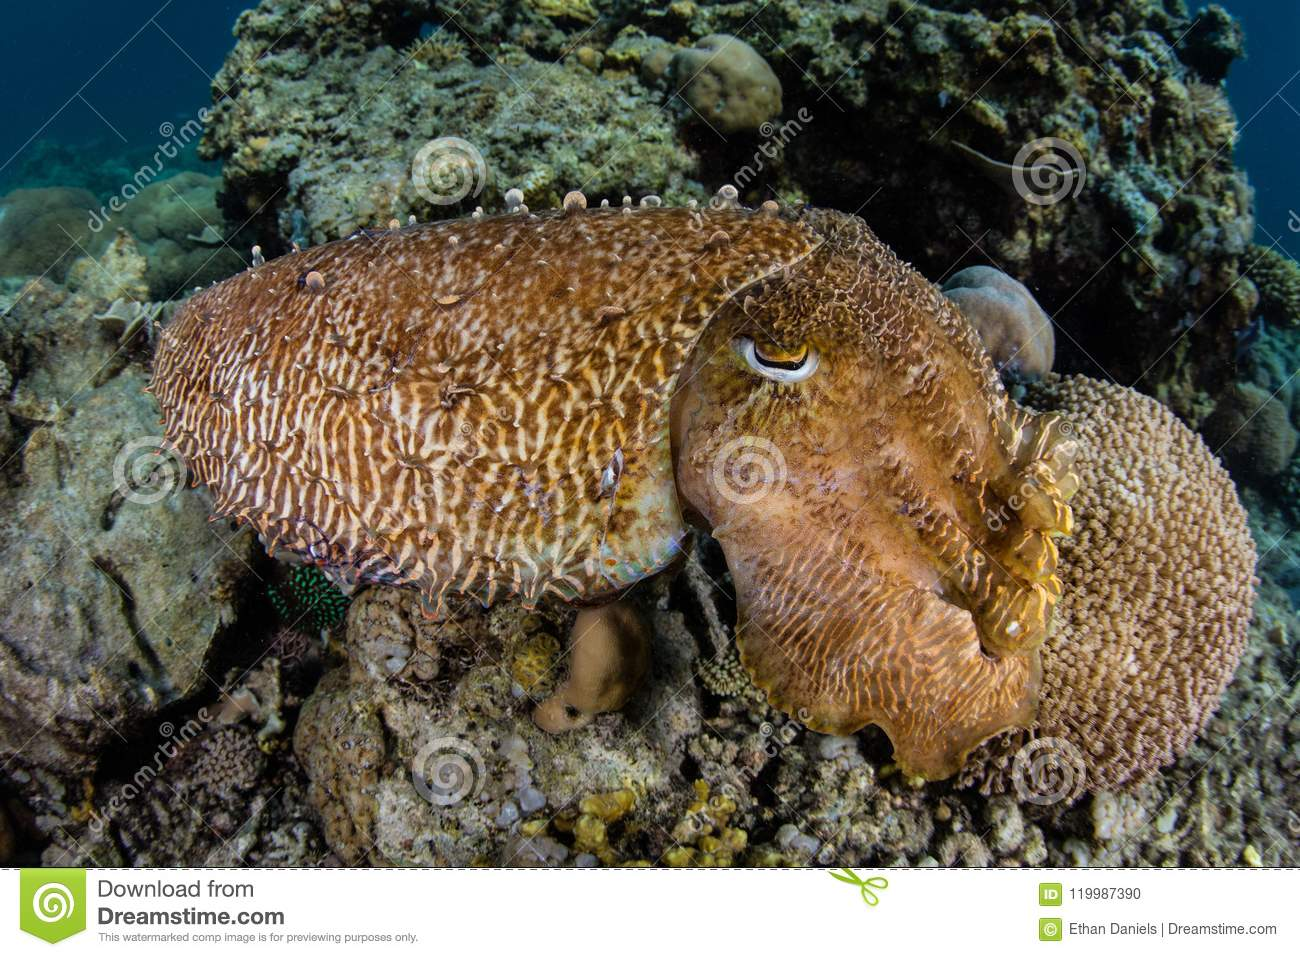 Broadclub Cuttlefish on Reef in Indonesia